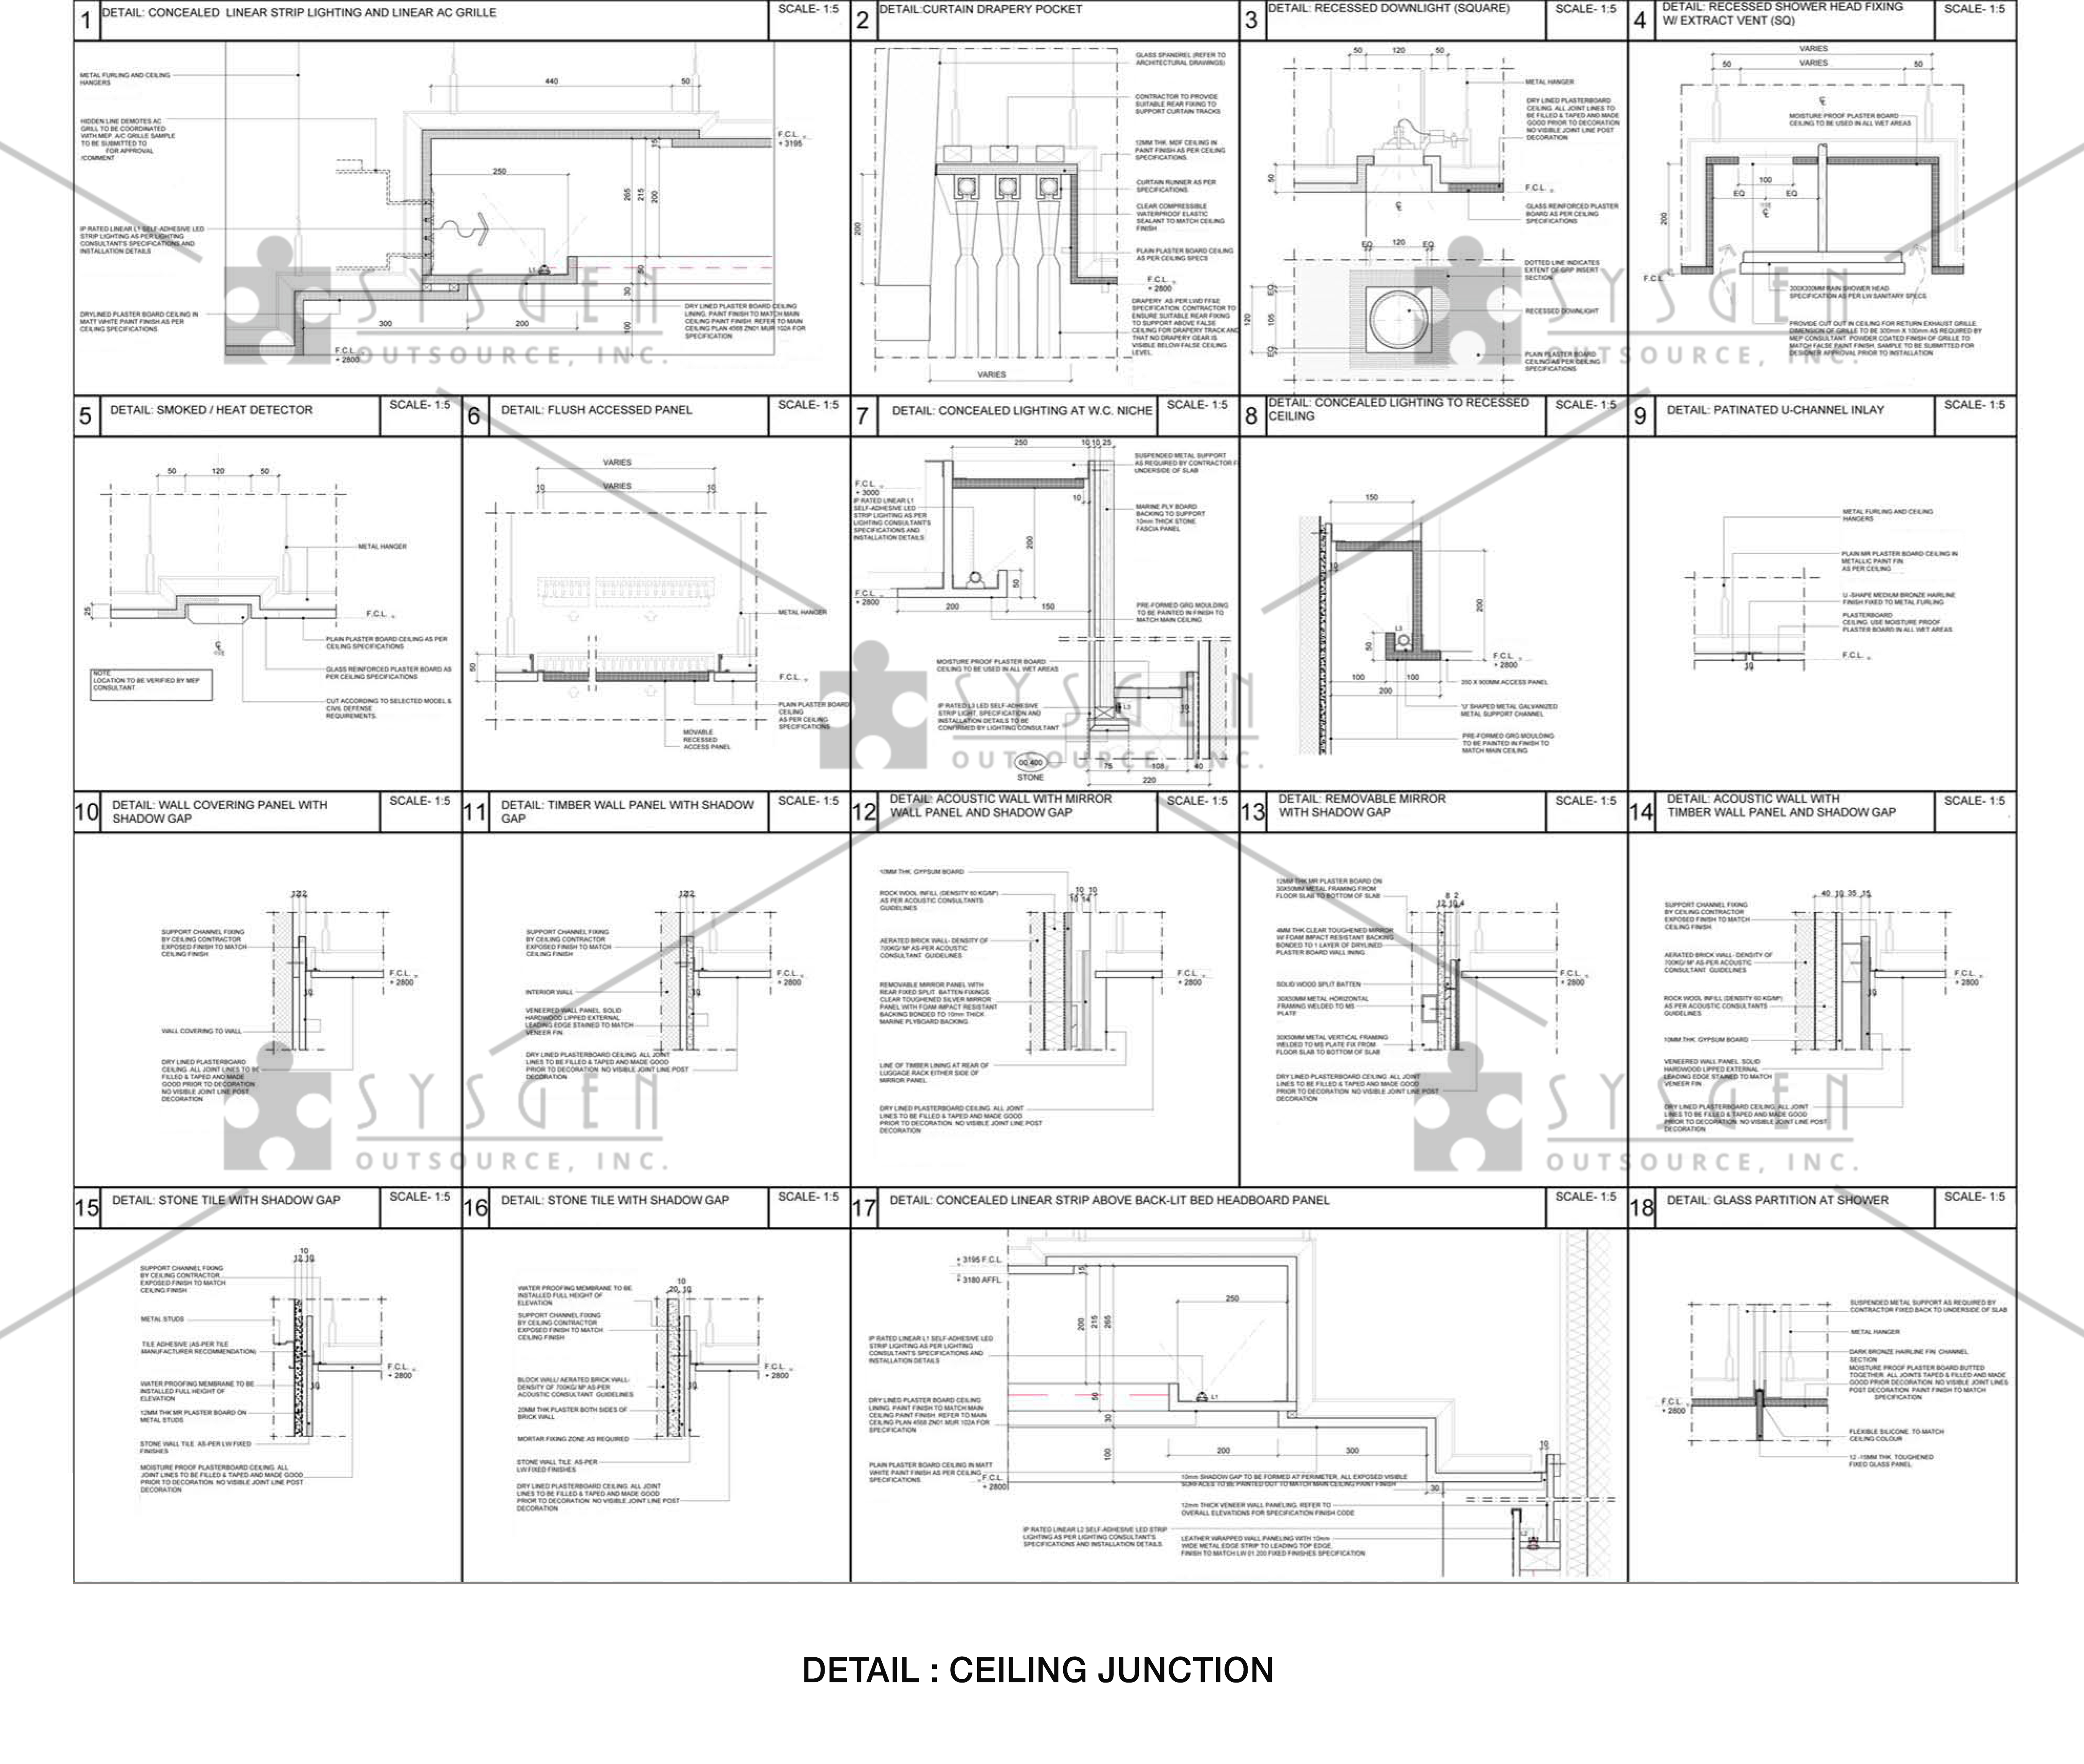 sysgen-outsource-cad-outsourcing-services-interior-design-shop-drawing3